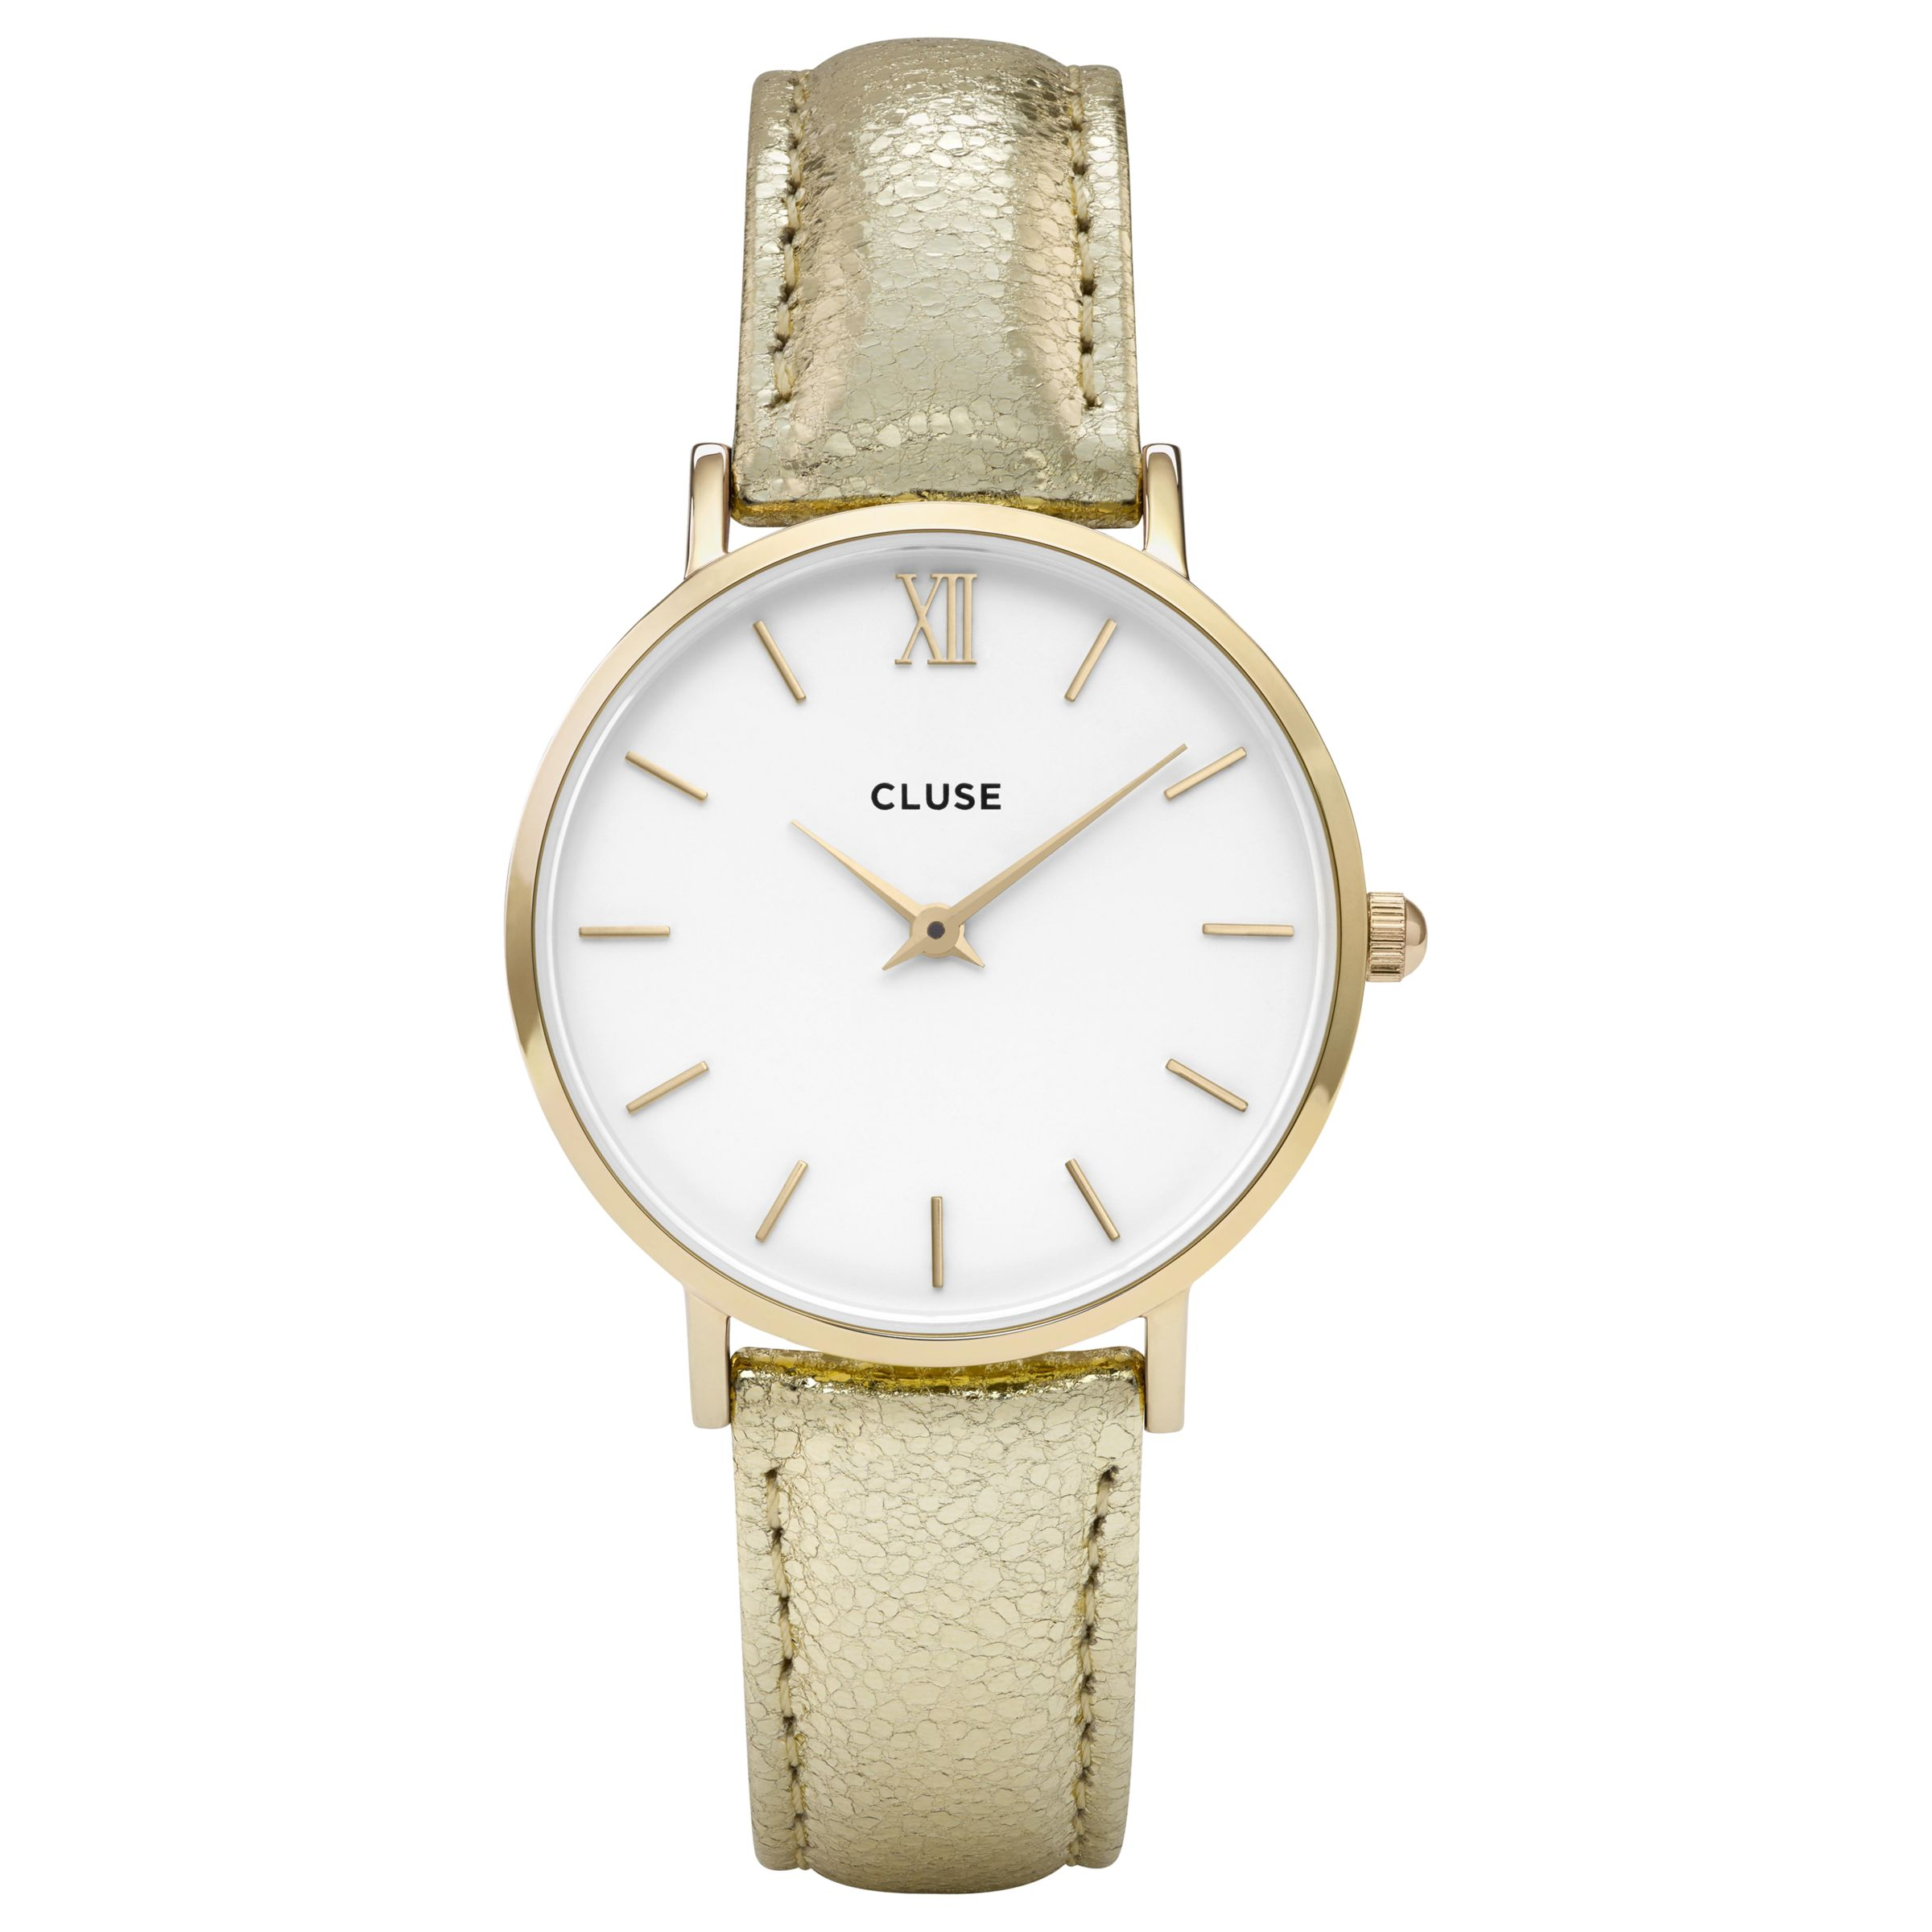 Cluse CLUSE Women's Minuit Gold Leather Strap Watch